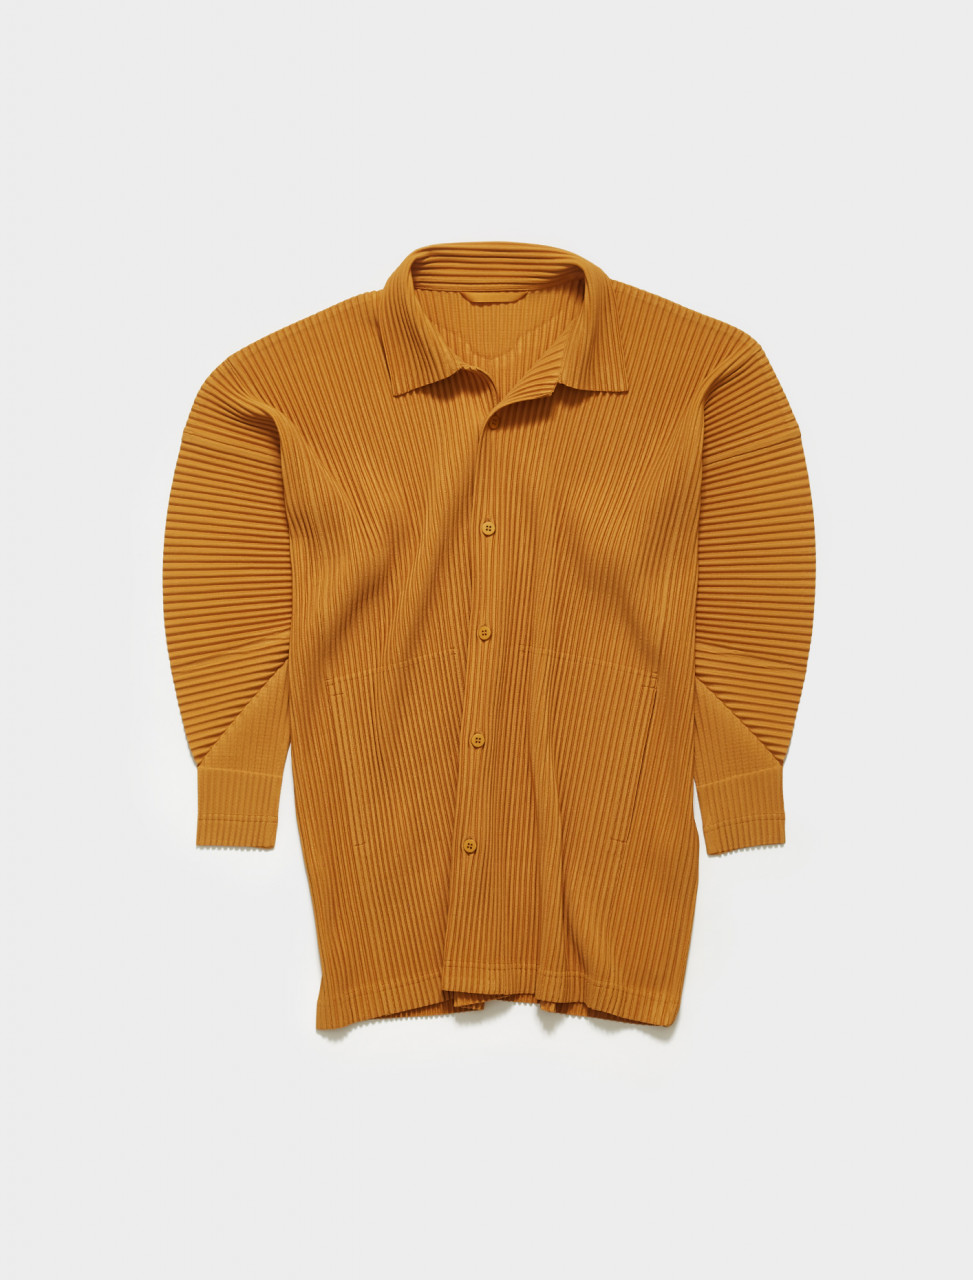 HP16JJ120-55 HOMME PLISSE ISSEY MIYAKE Pleated Shirt in Yellow Ochre